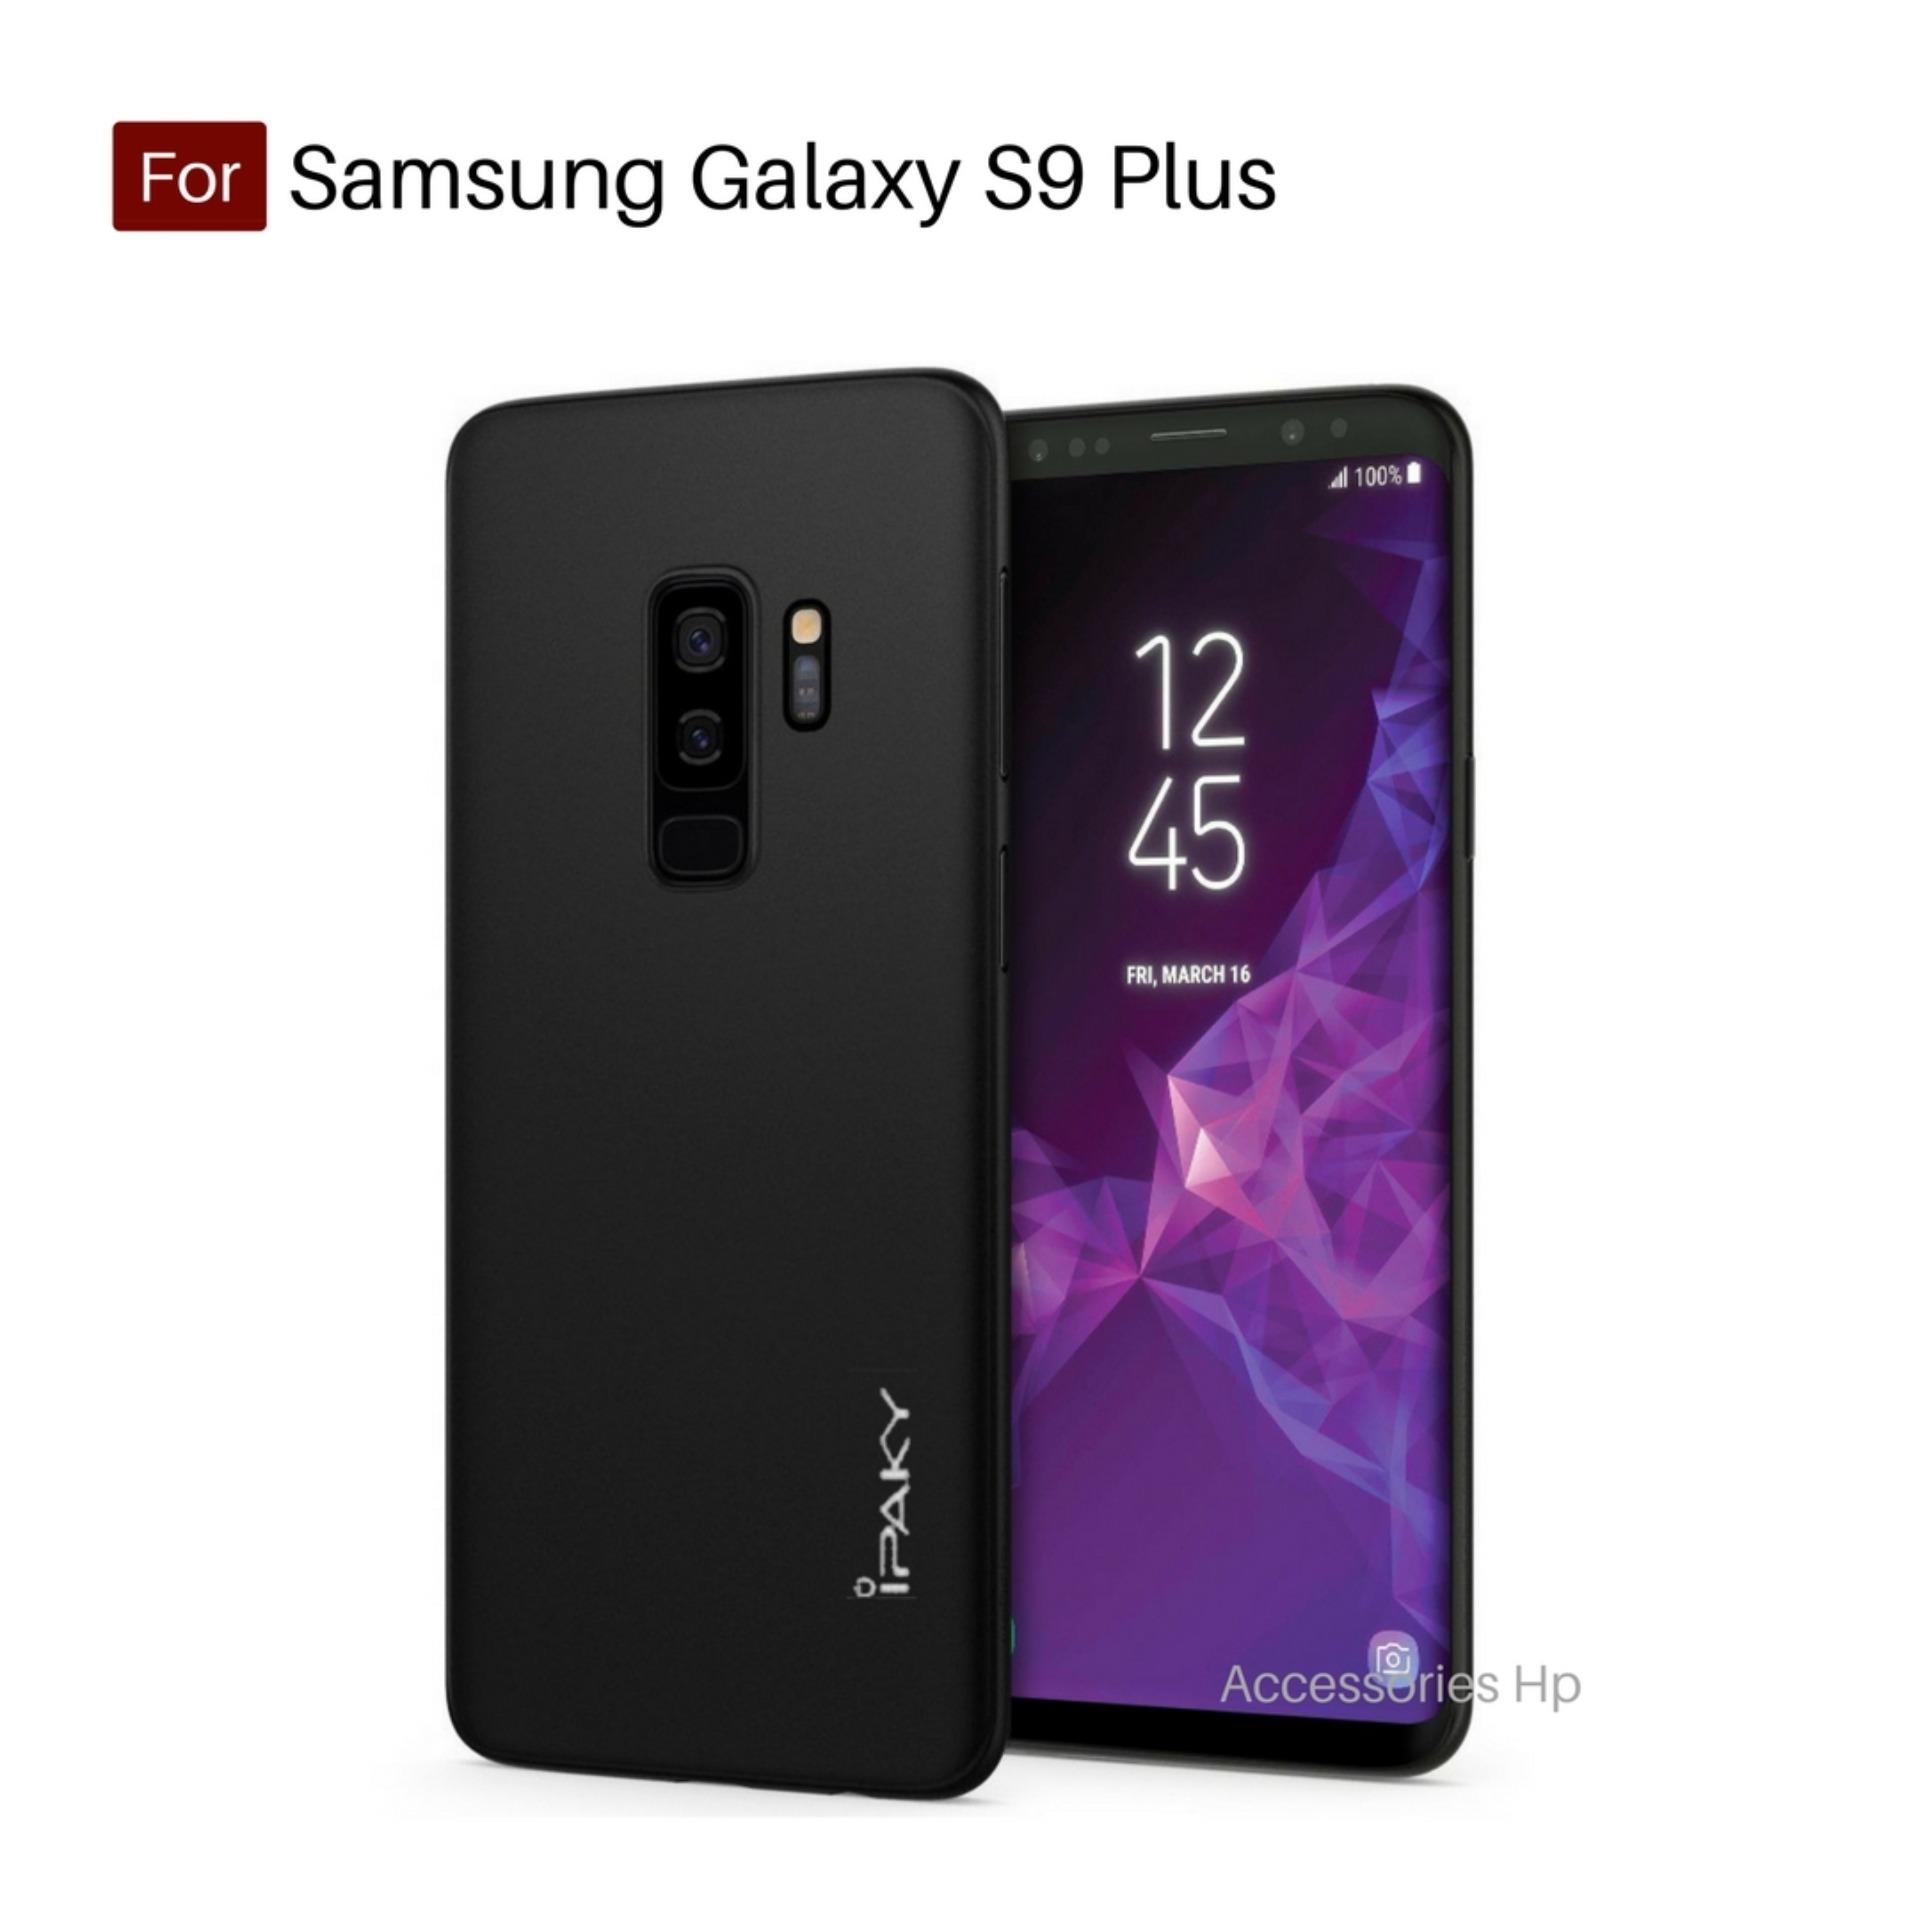 Accessories Hp iPaky Super Slim Matte Anti Fingerprint Hybrid Case For Samsung Galaxy S9 Plus -